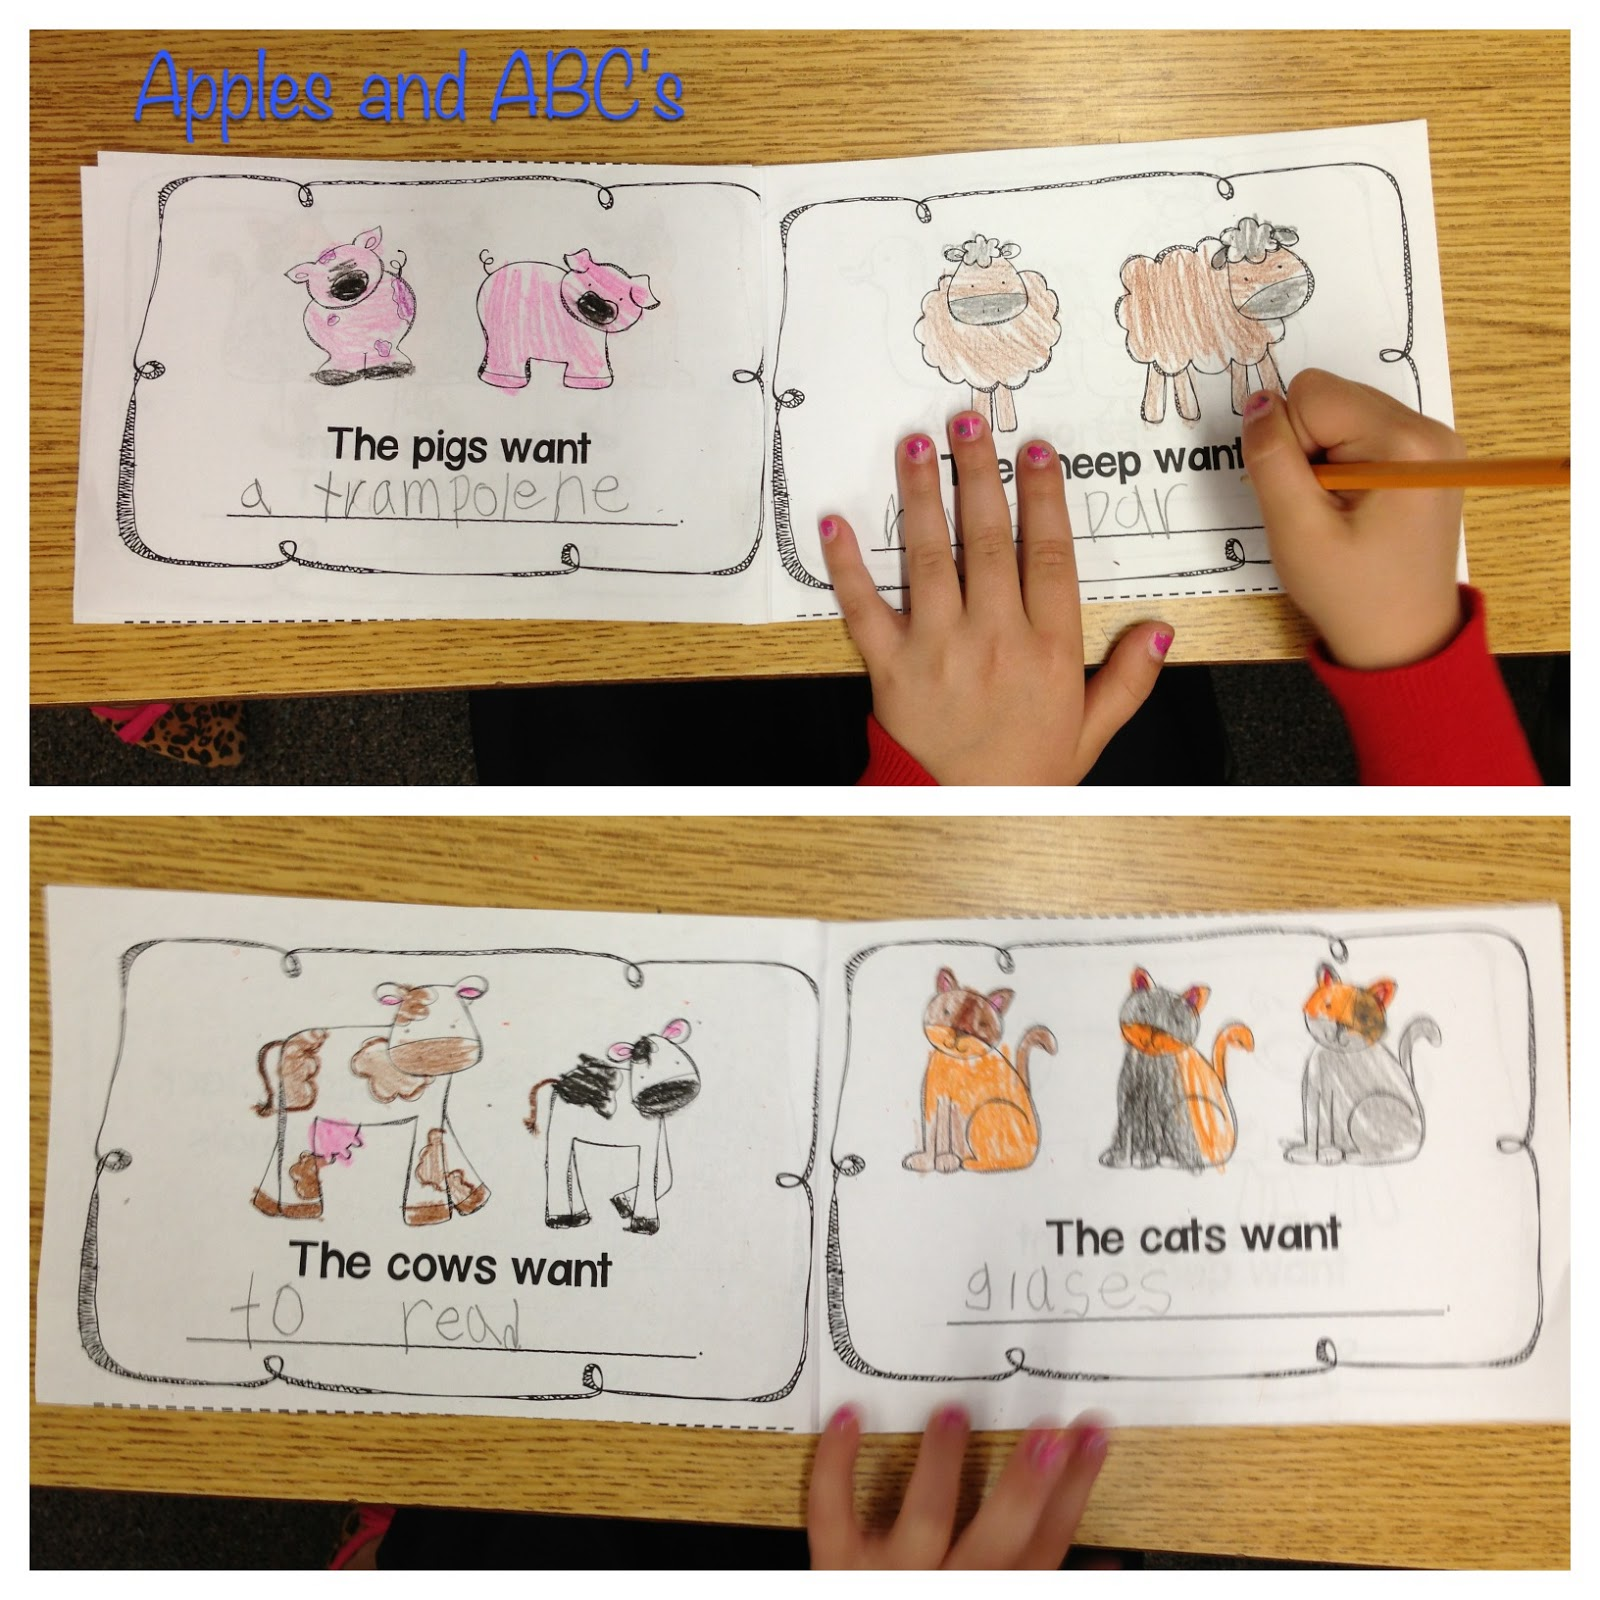 ... show what each animal wanted! The kids got really creative with this